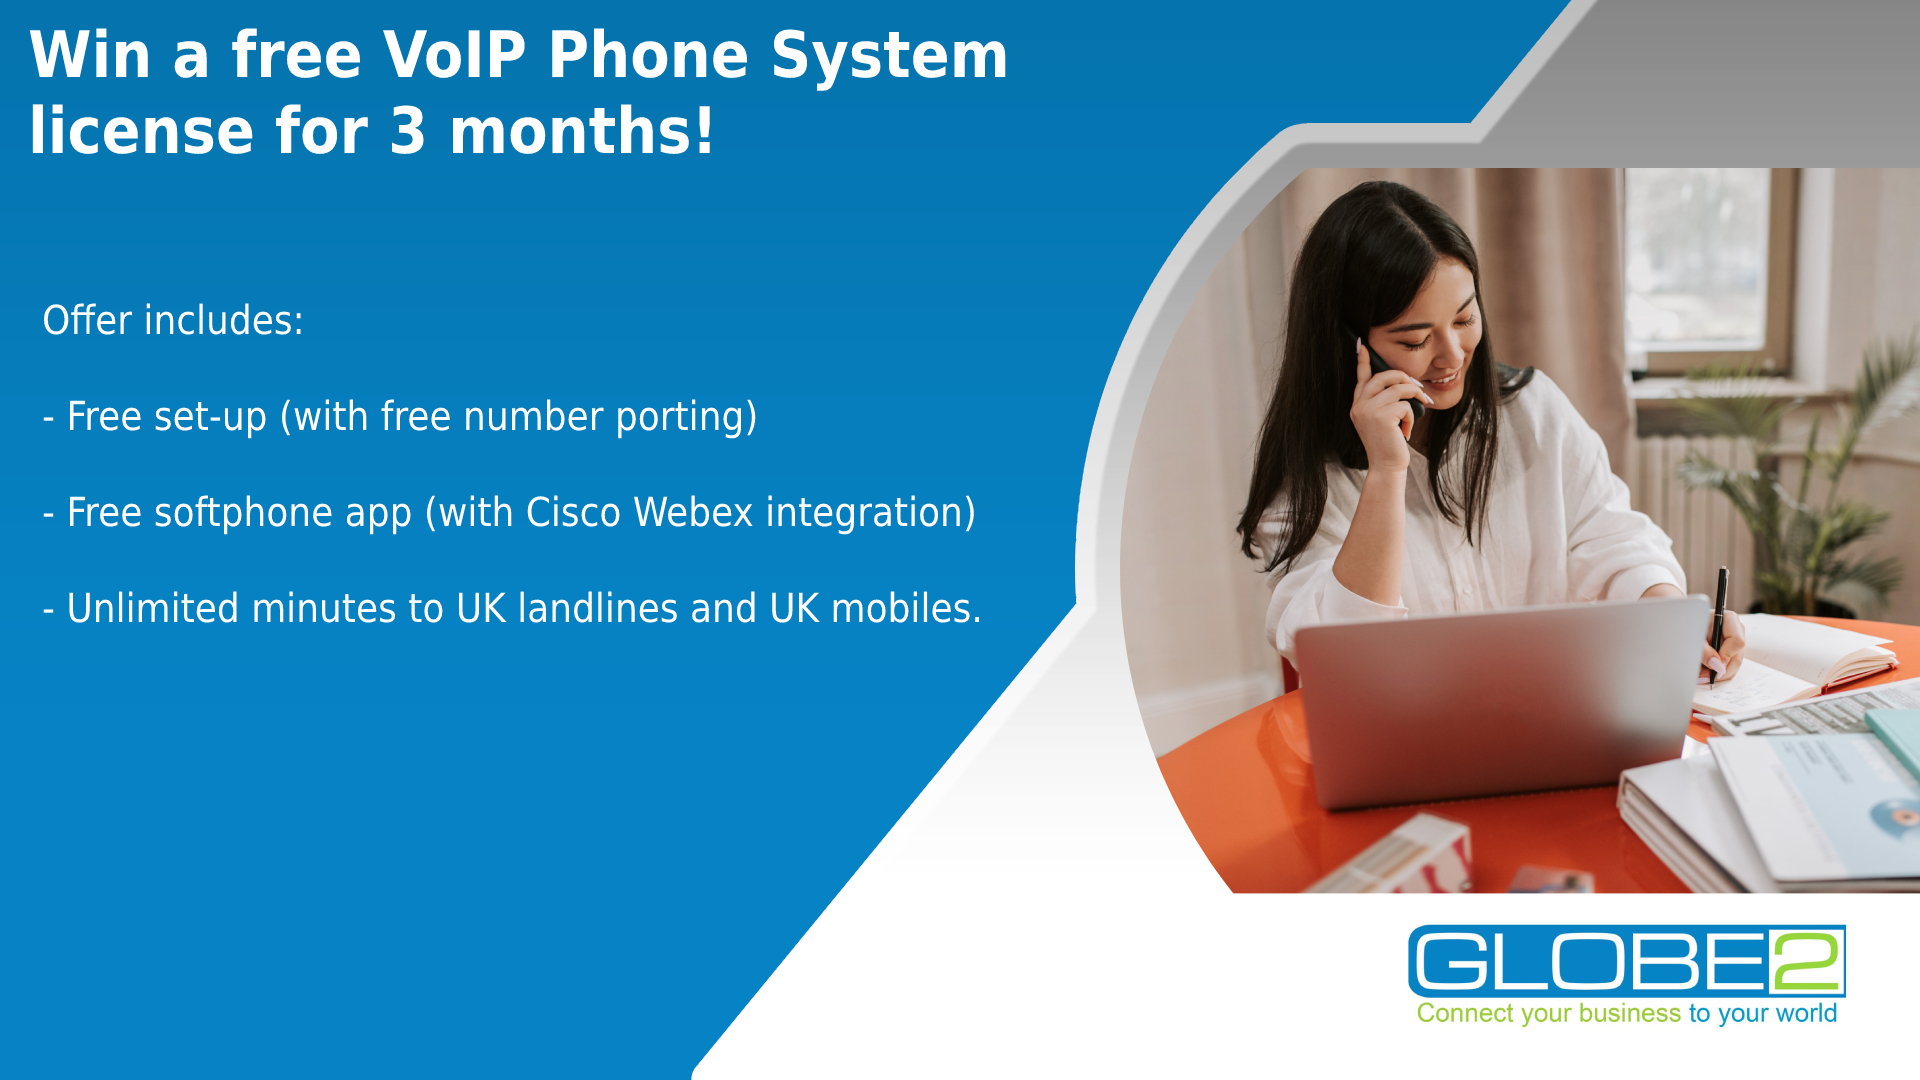 Free Cloud Phone System Licenses Giveaway